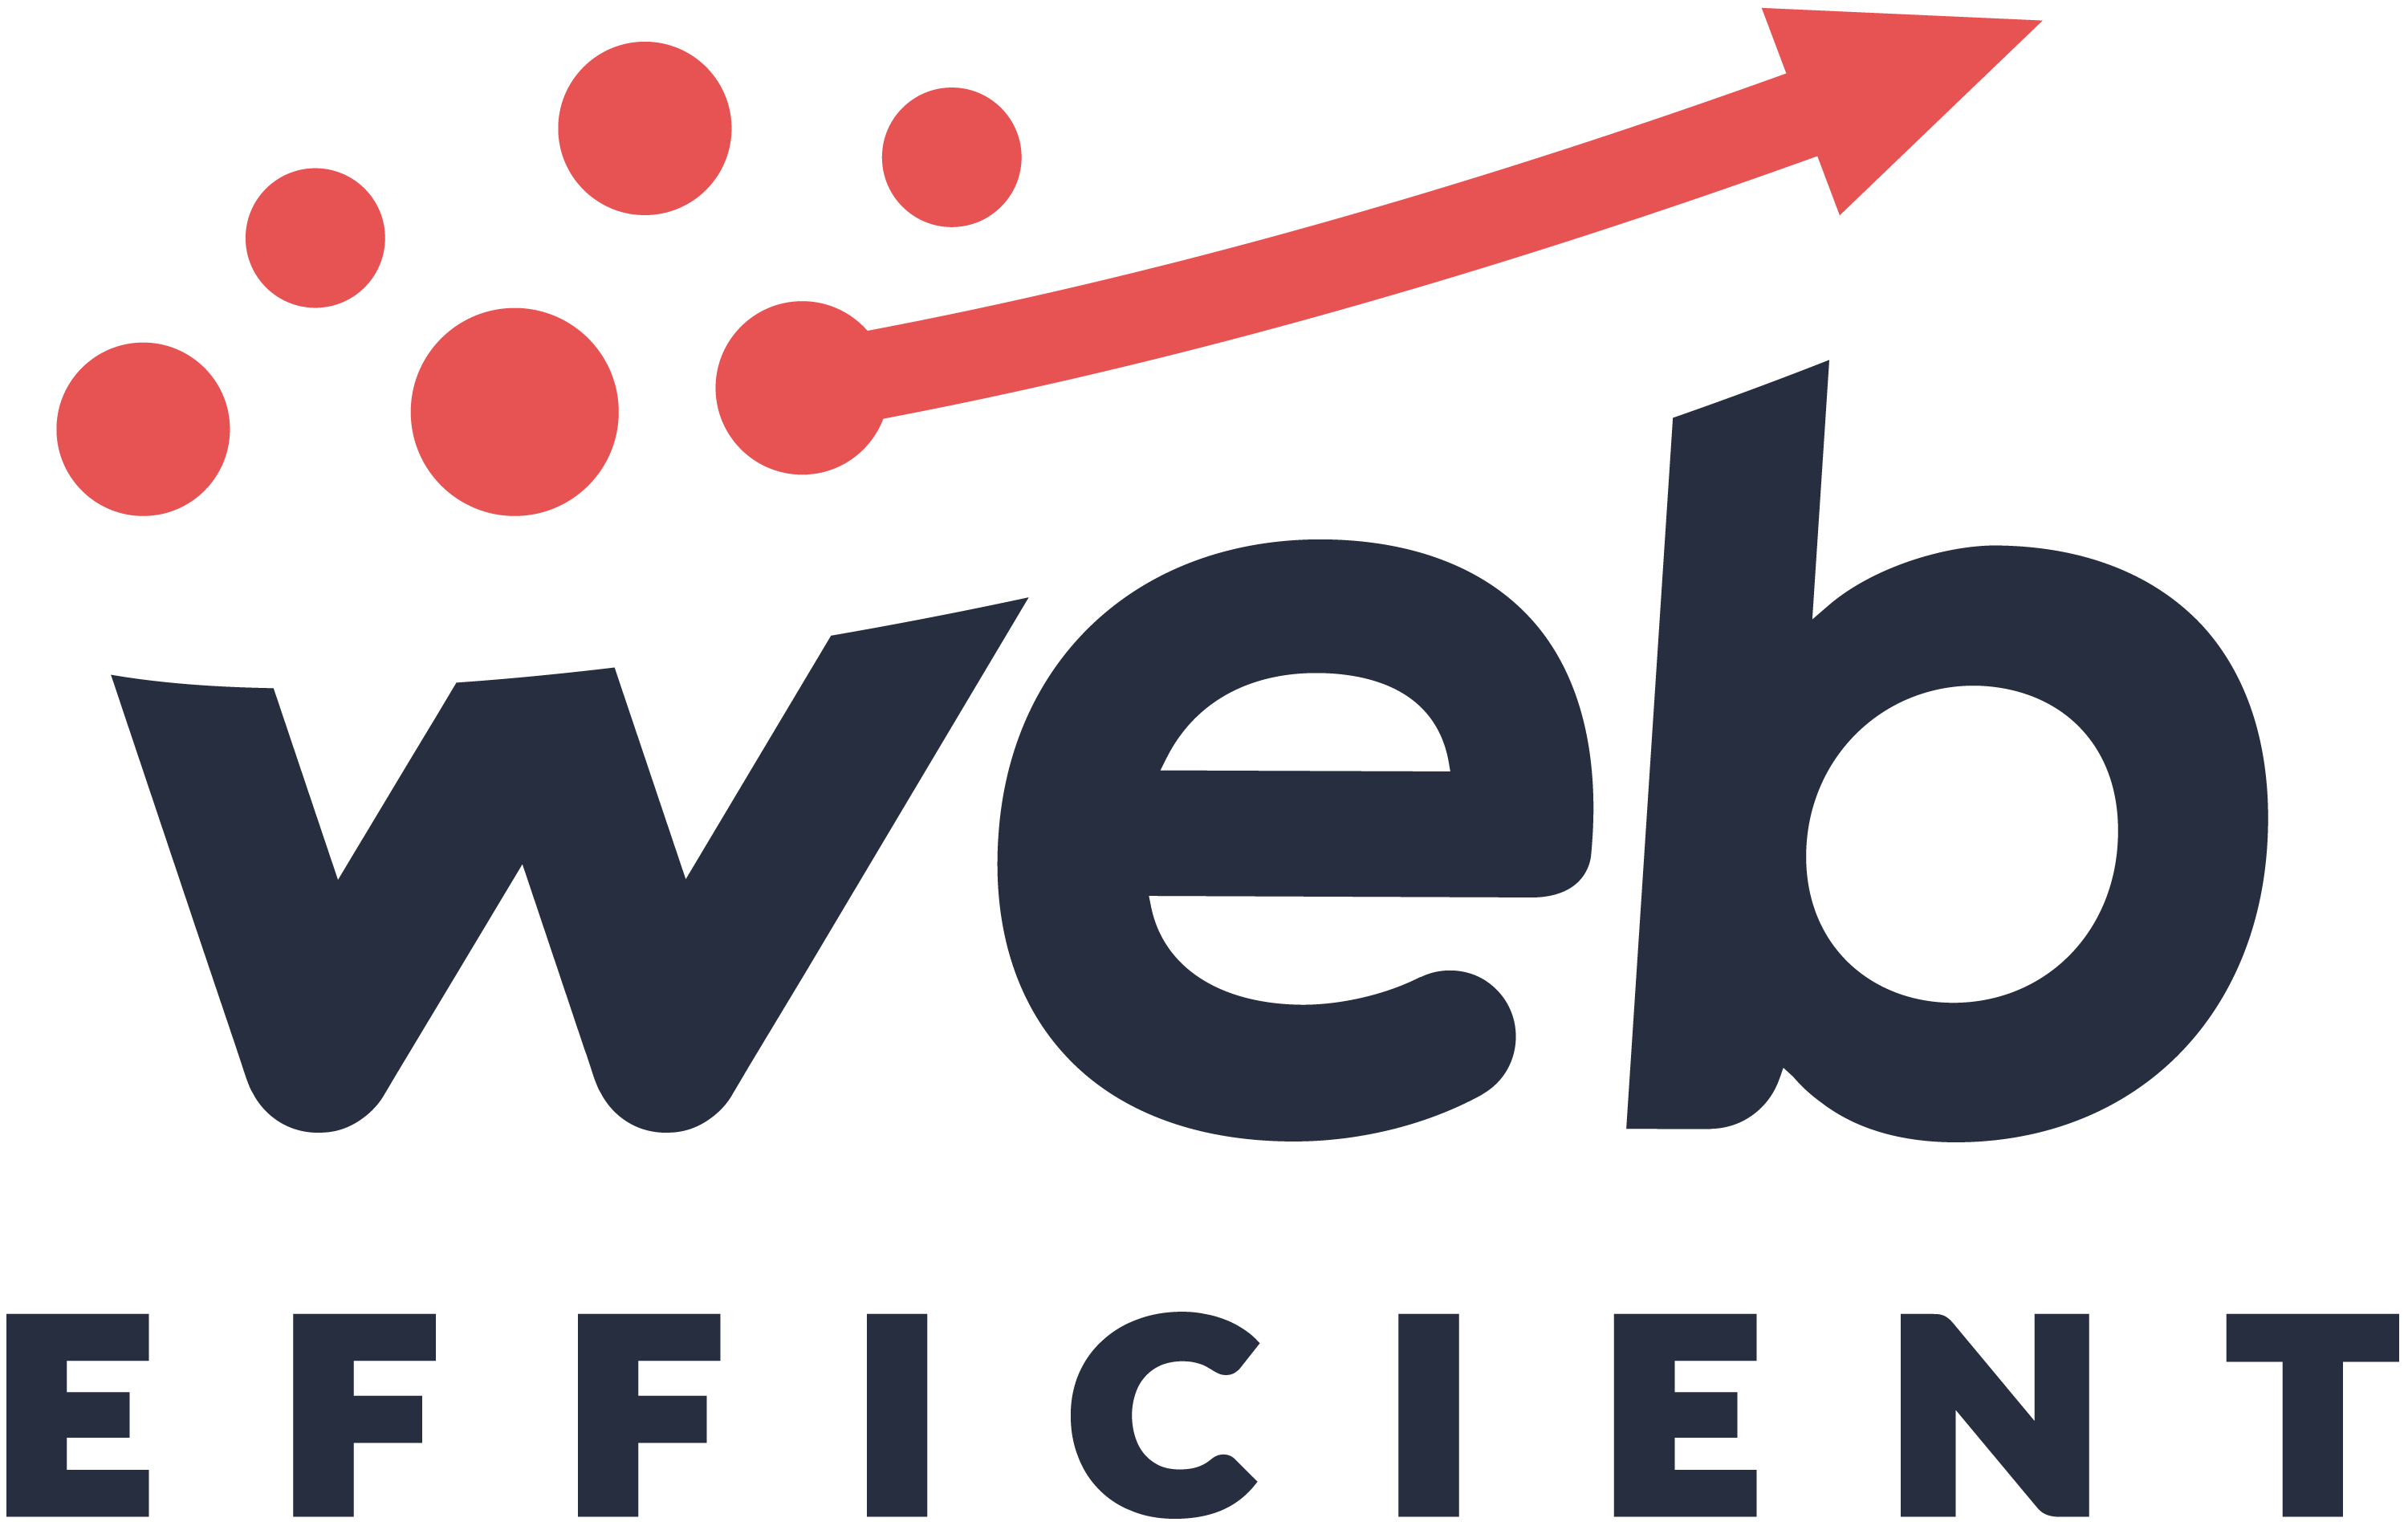 Web Efficient